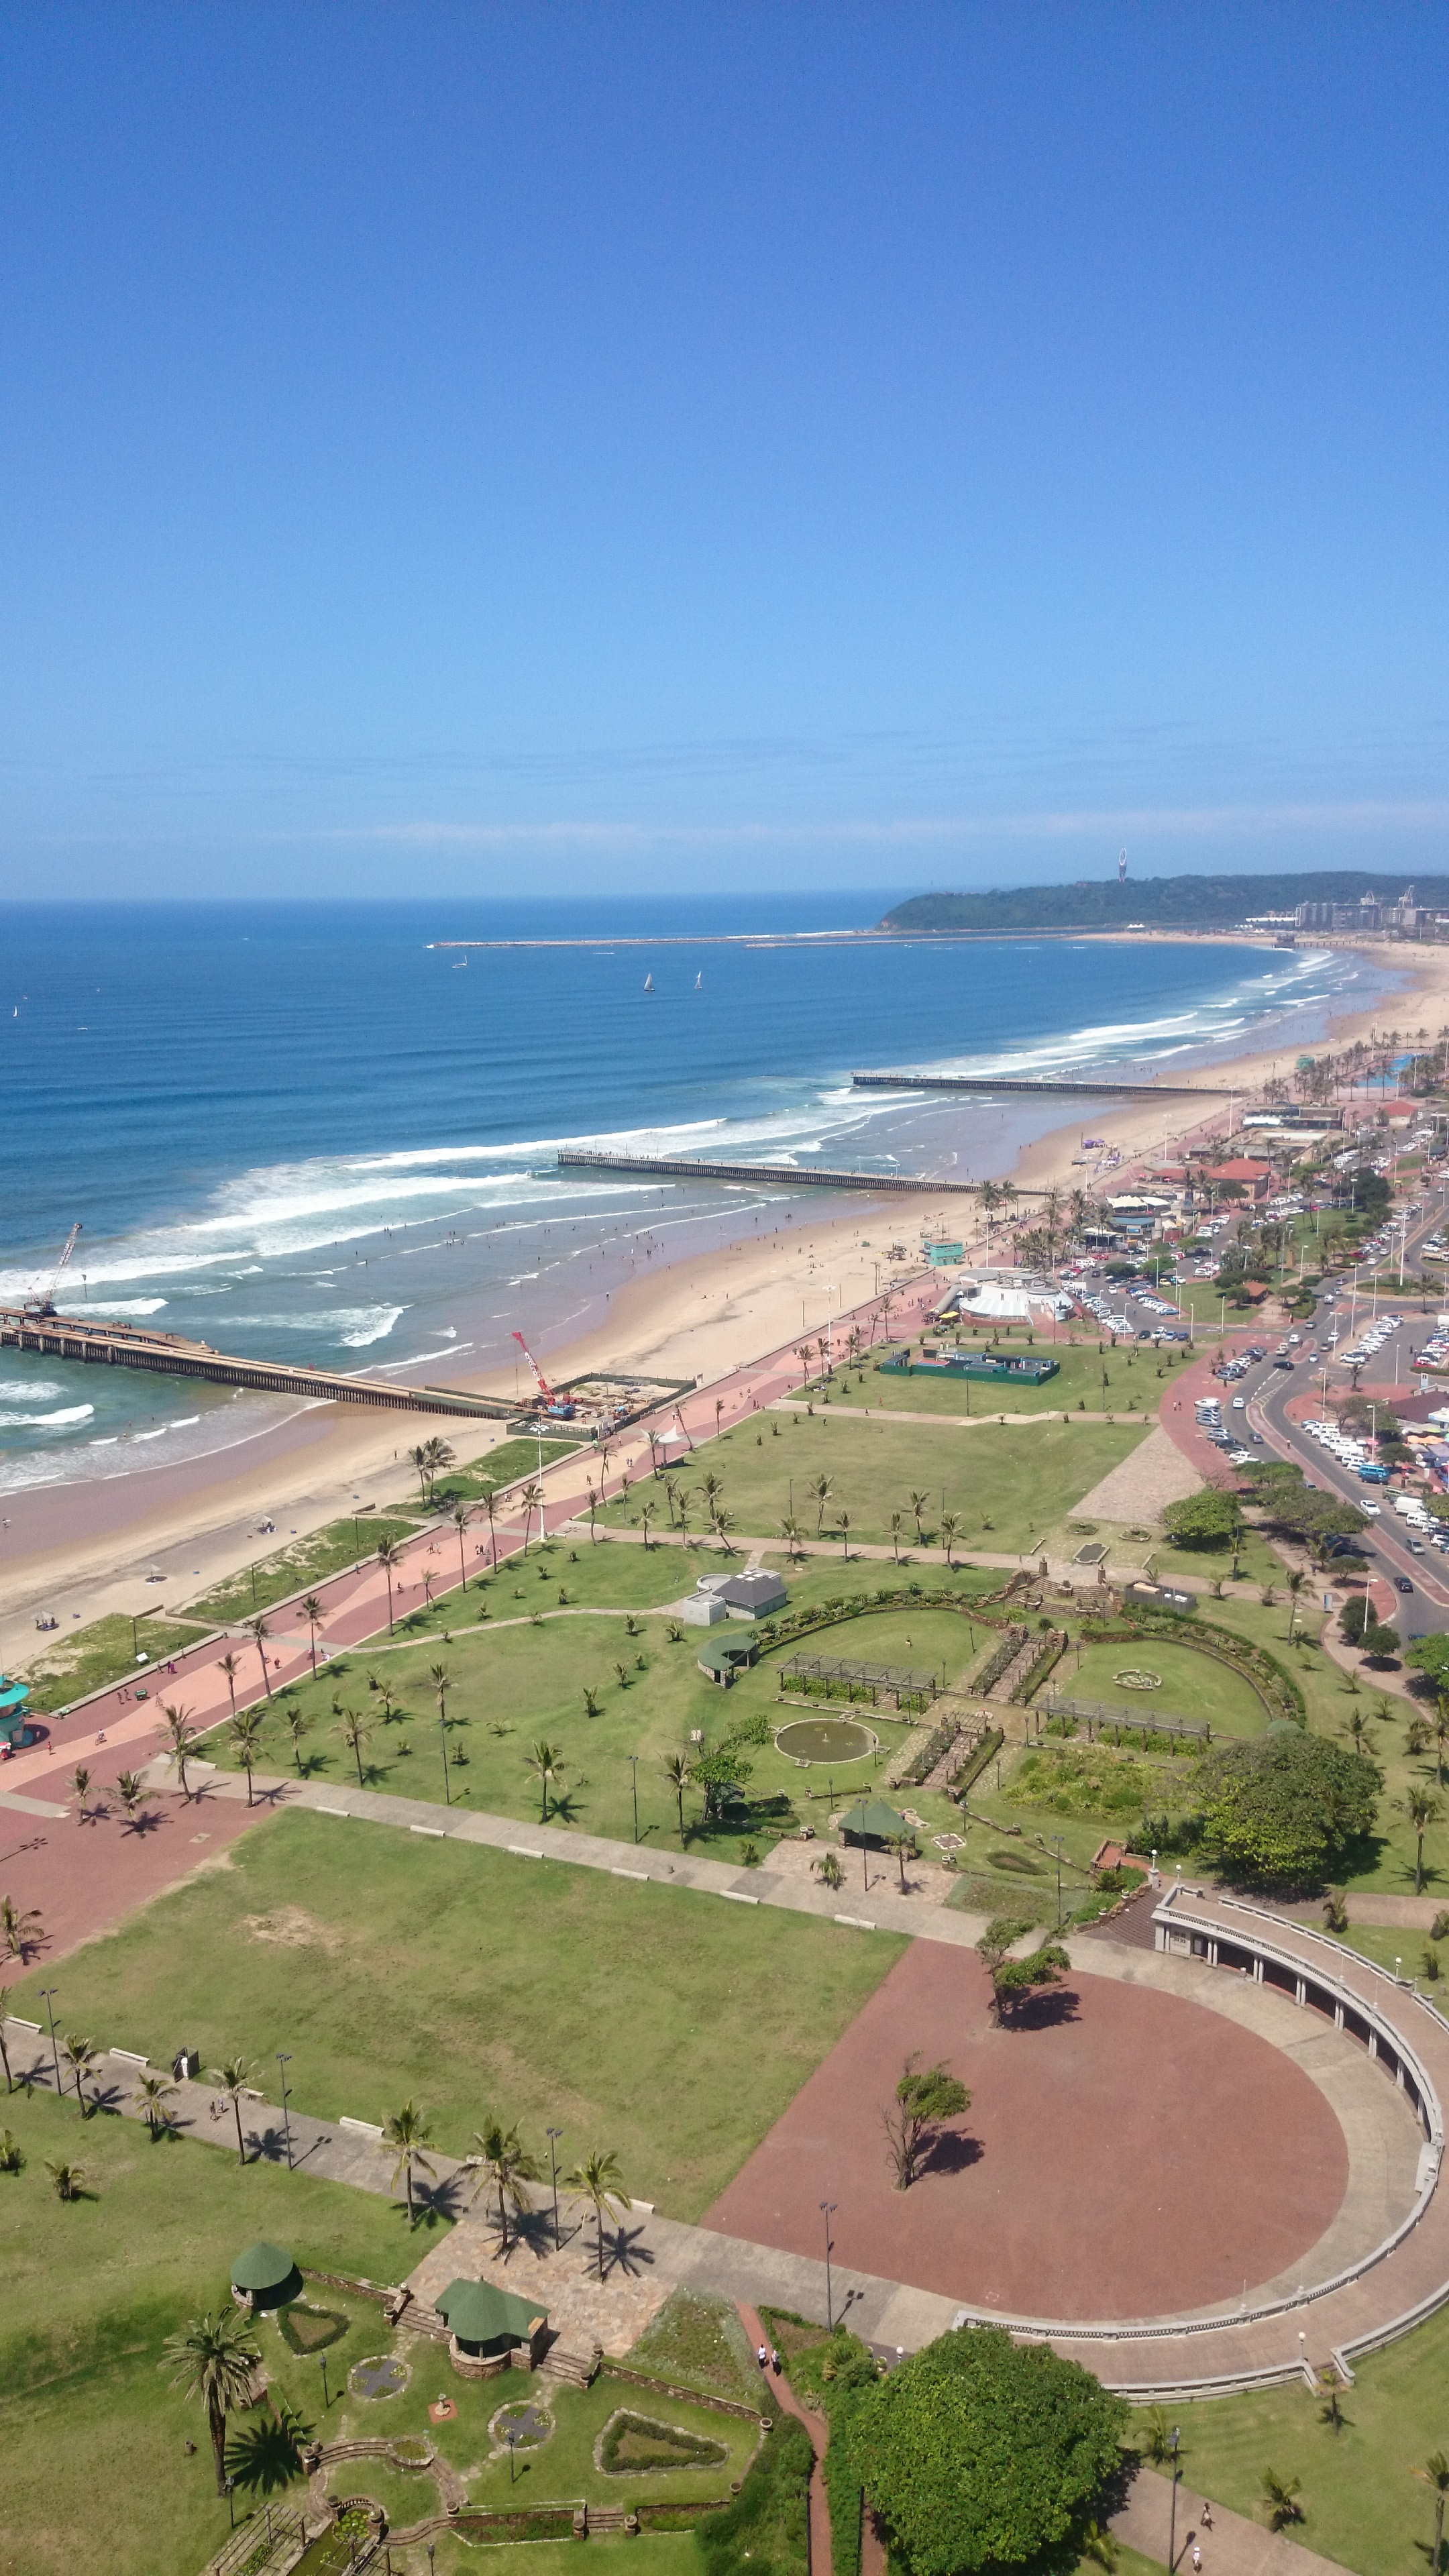 Registration open: WHS Summit, Durban, South Africa